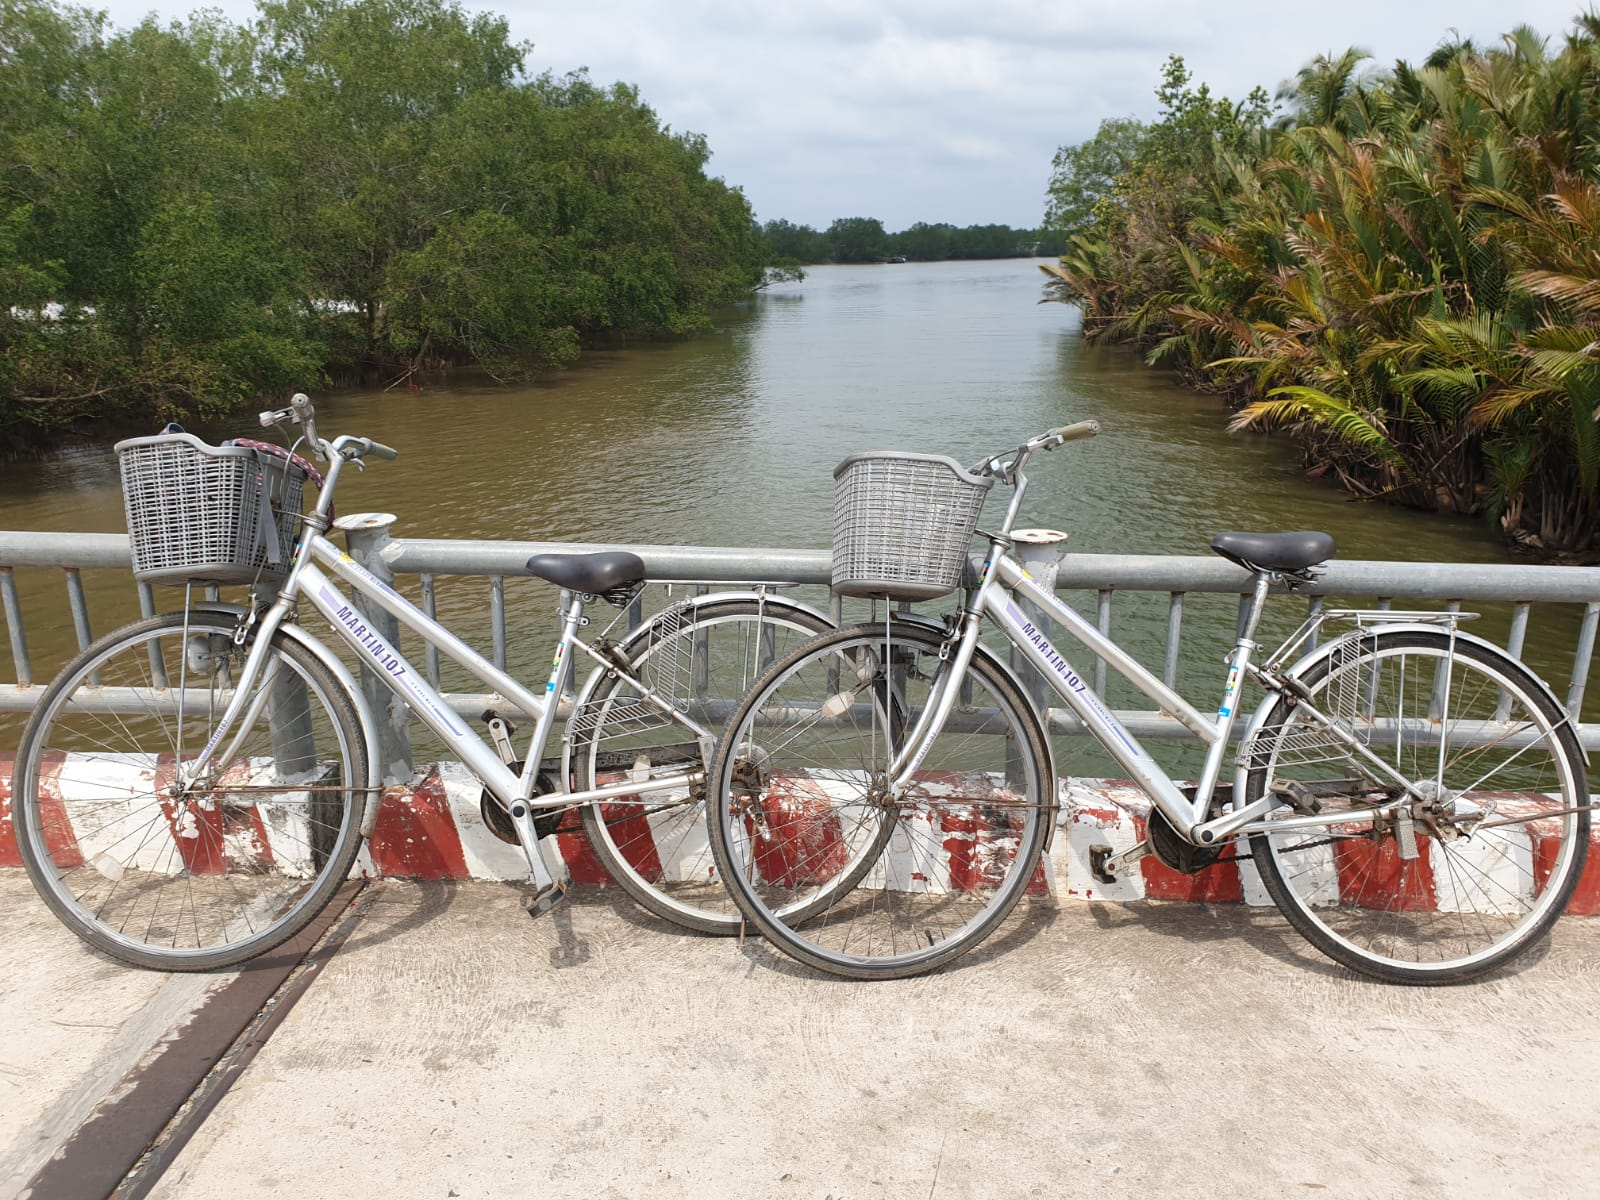 Discover the Mekong Delta at the rhythm of the bicycle